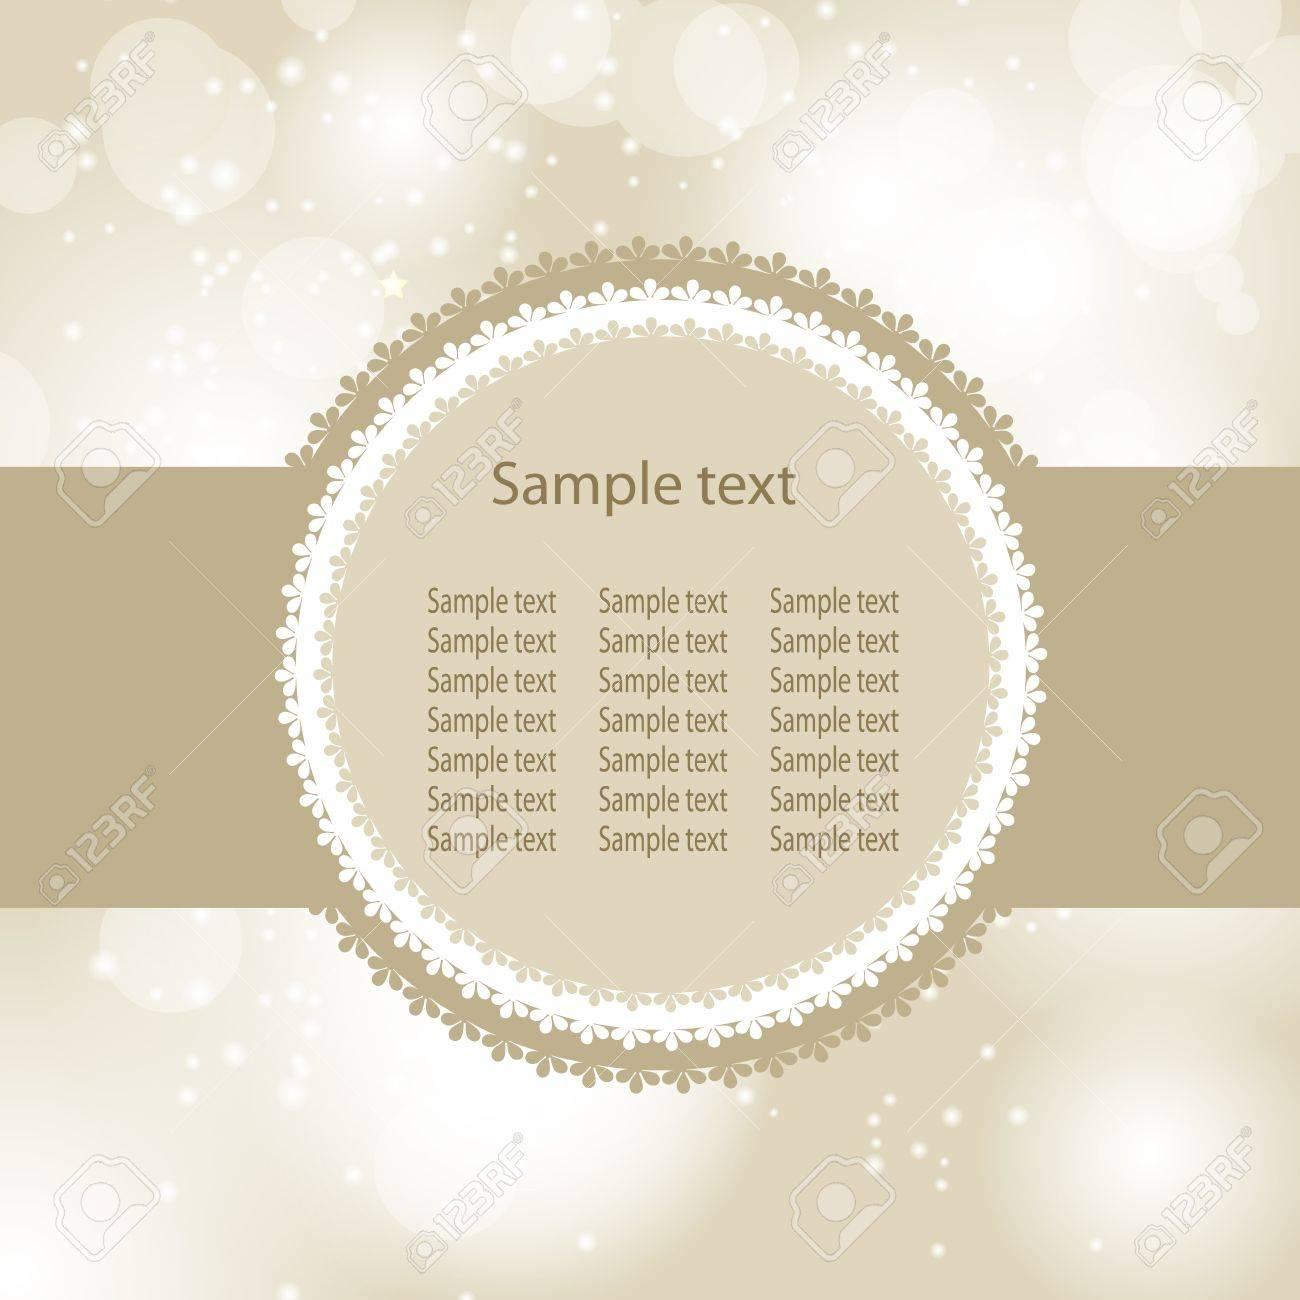 Abstract beauty Christmas and New Year background  Vector illustration Stock Vector - 14981295